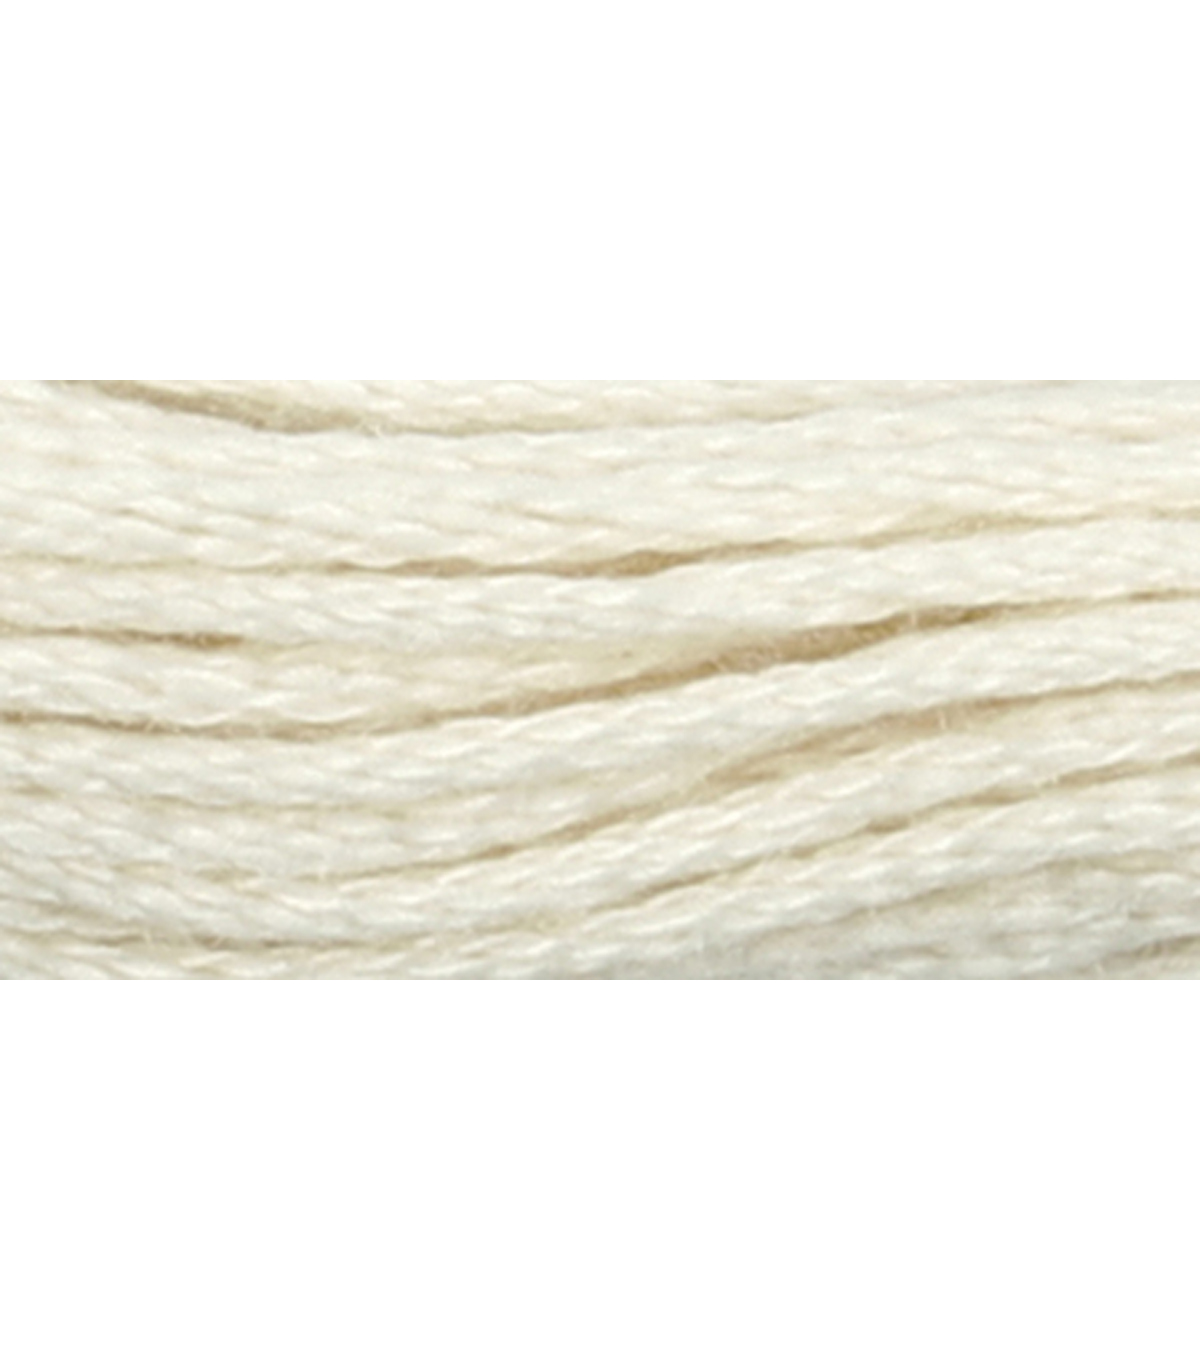 C&C 6-Strand Embroidery Floss 8.75yd-Cream